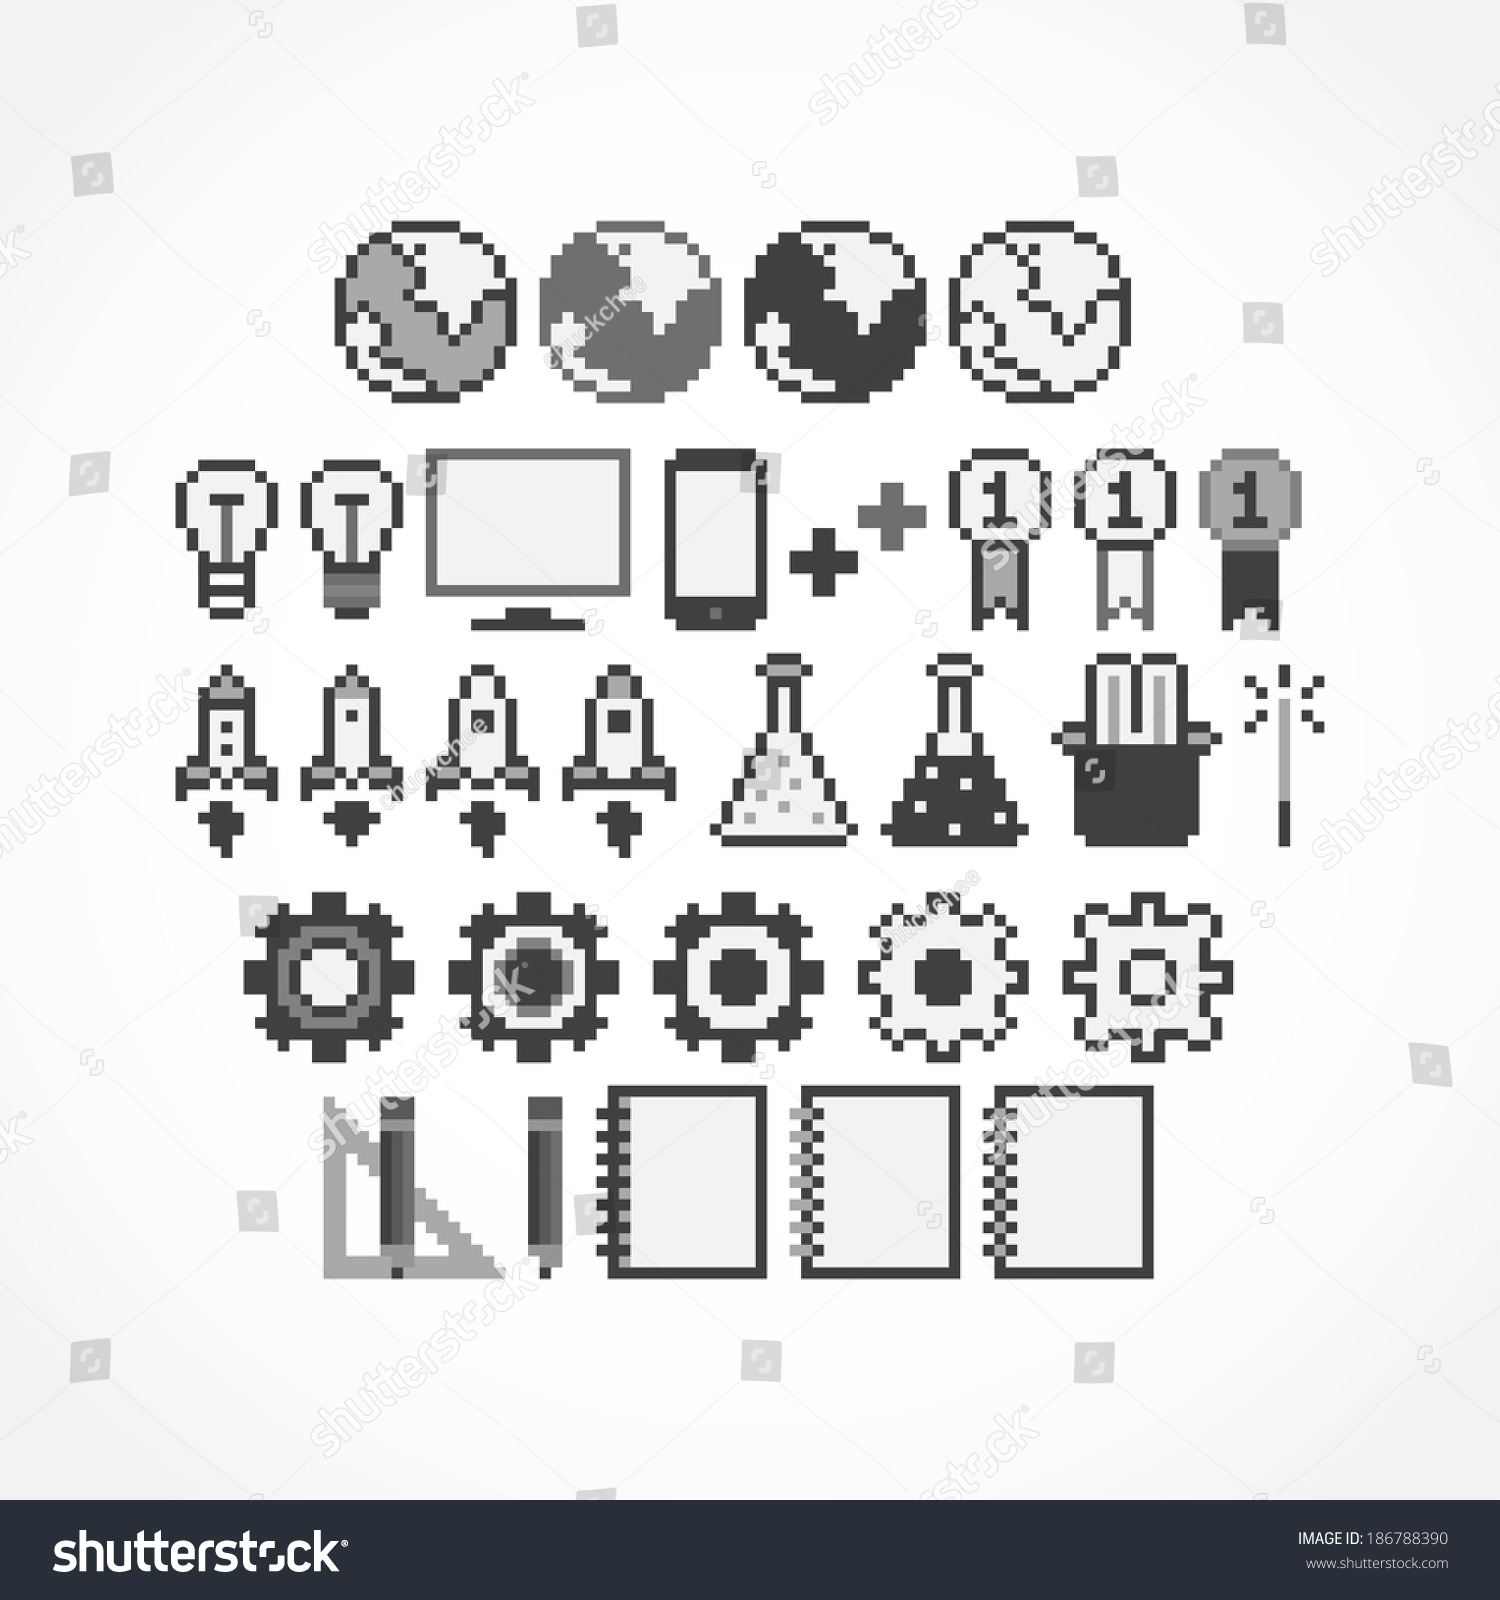 Set Of Pixel Art Grayscale Icons Stock Vector Illustration